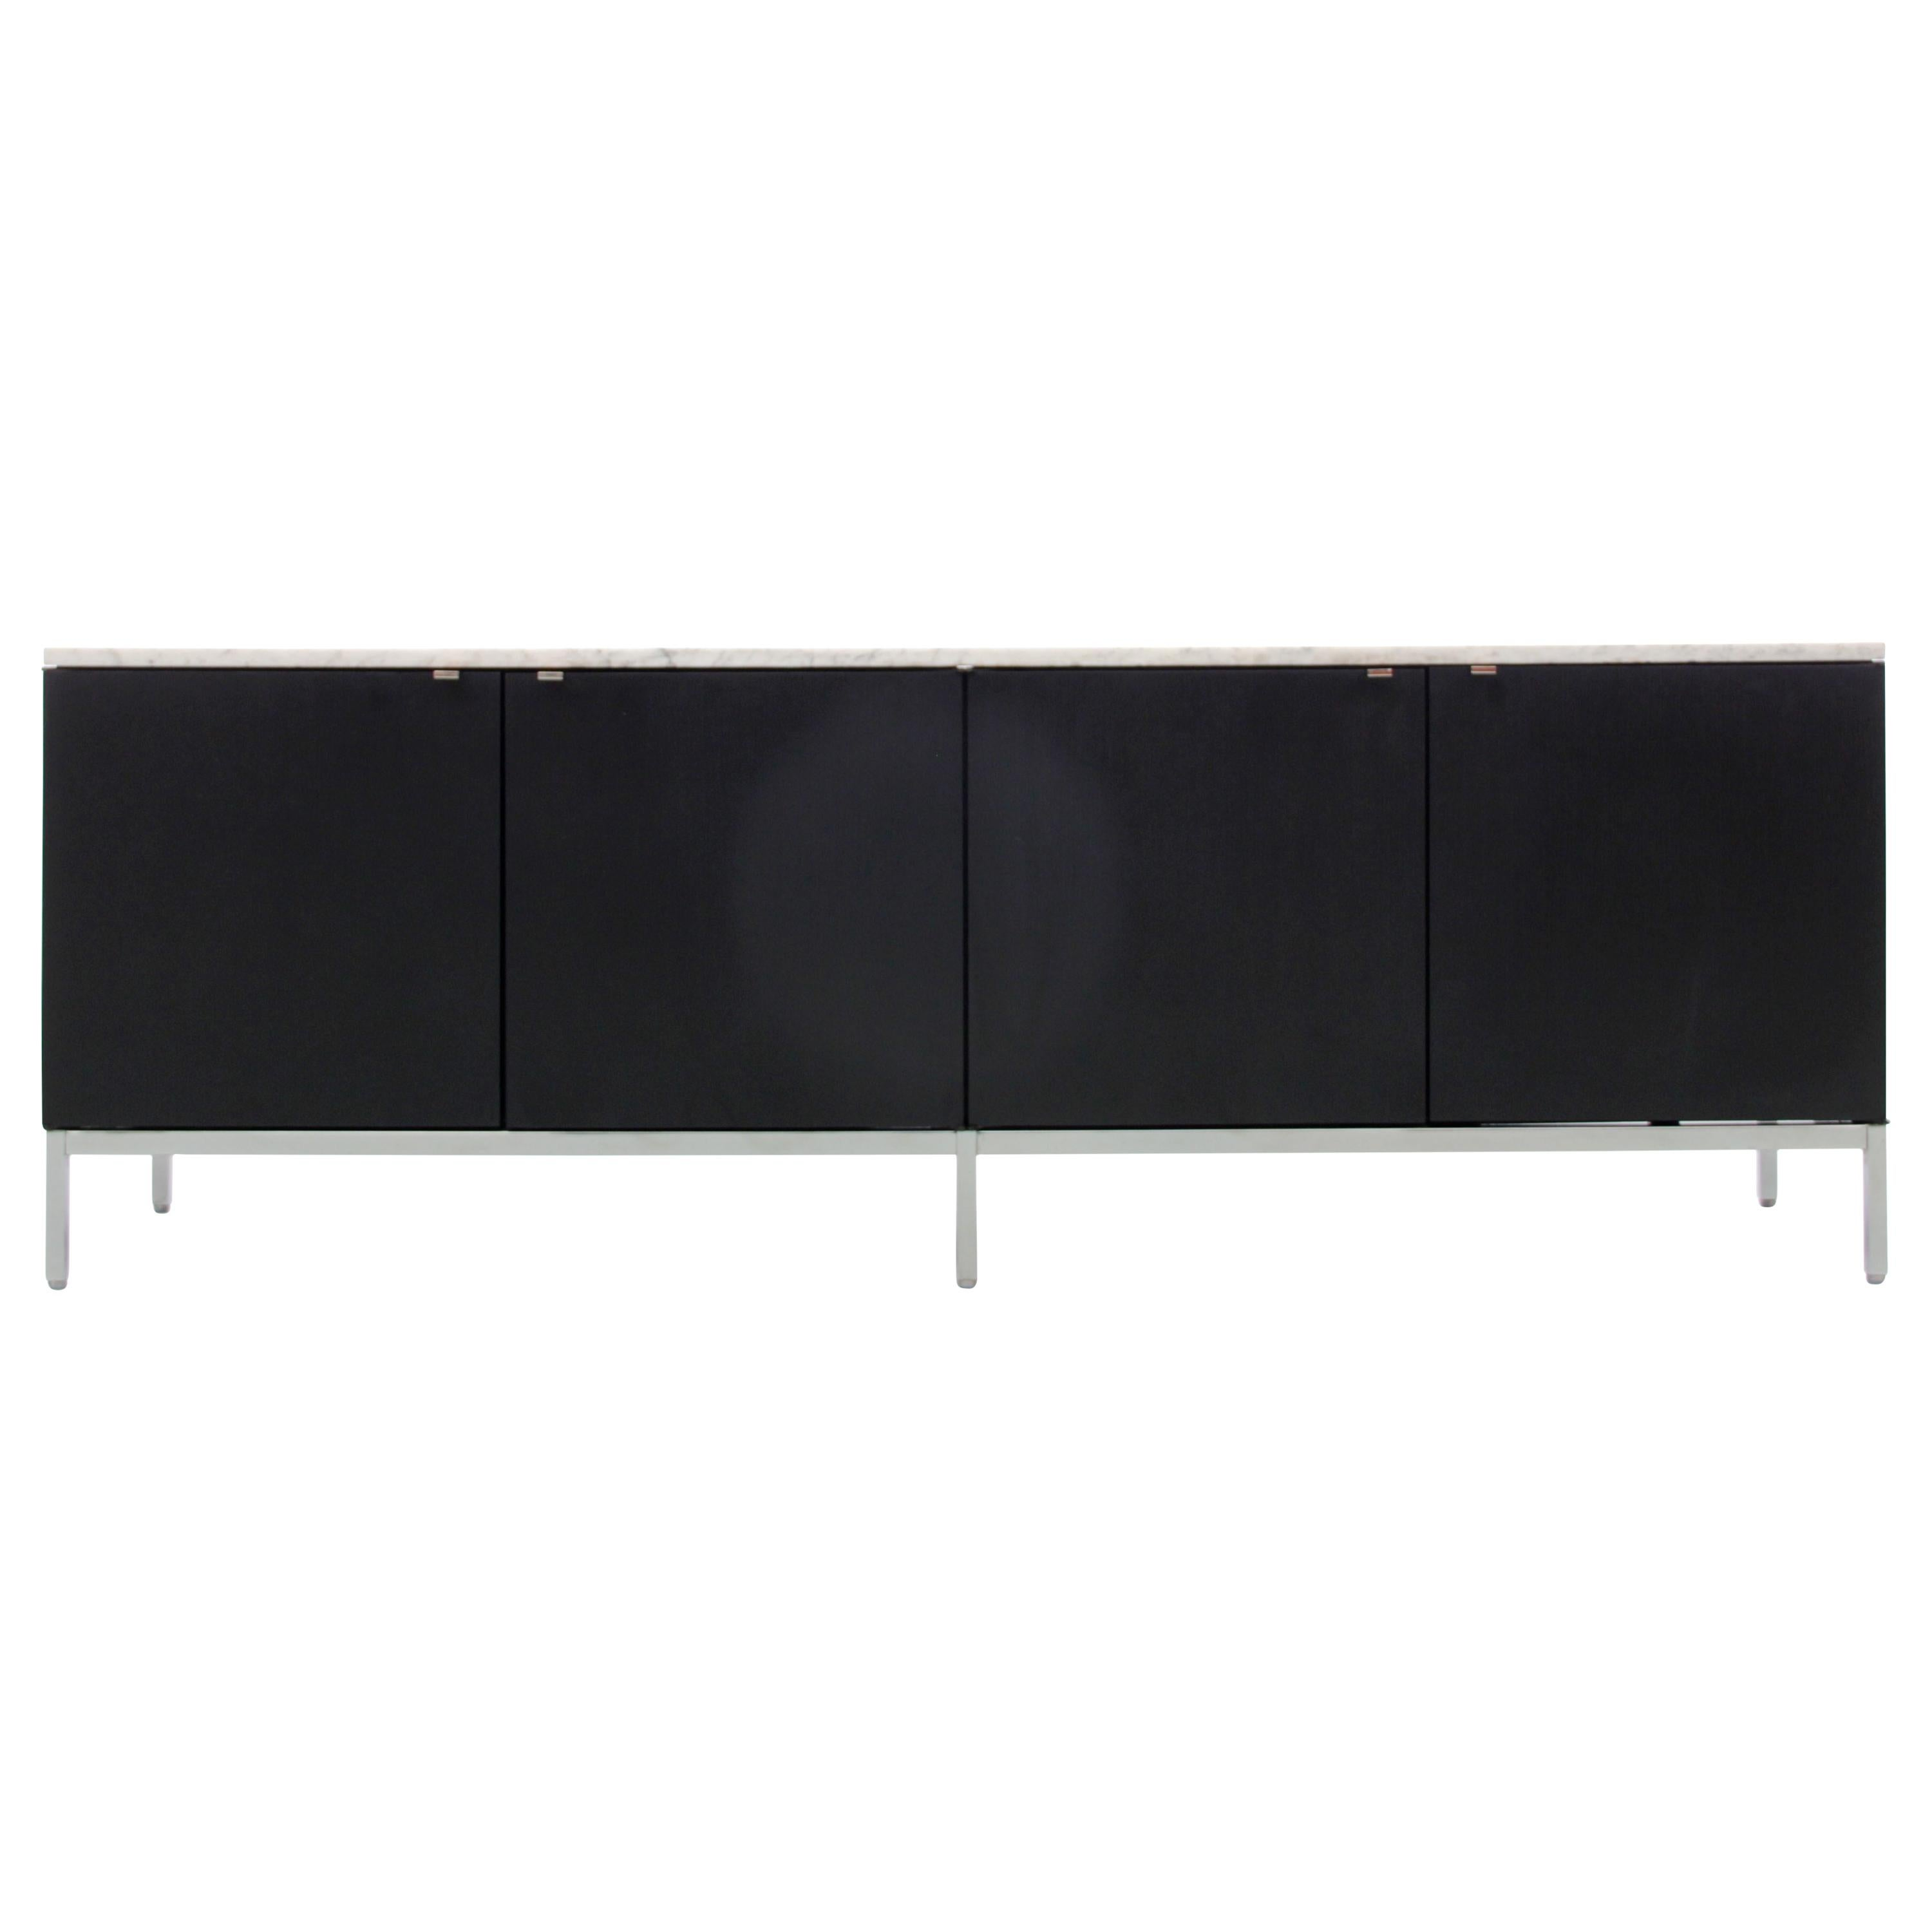 Mid-Century Modern Credenza by Florence Knoll, 1960s